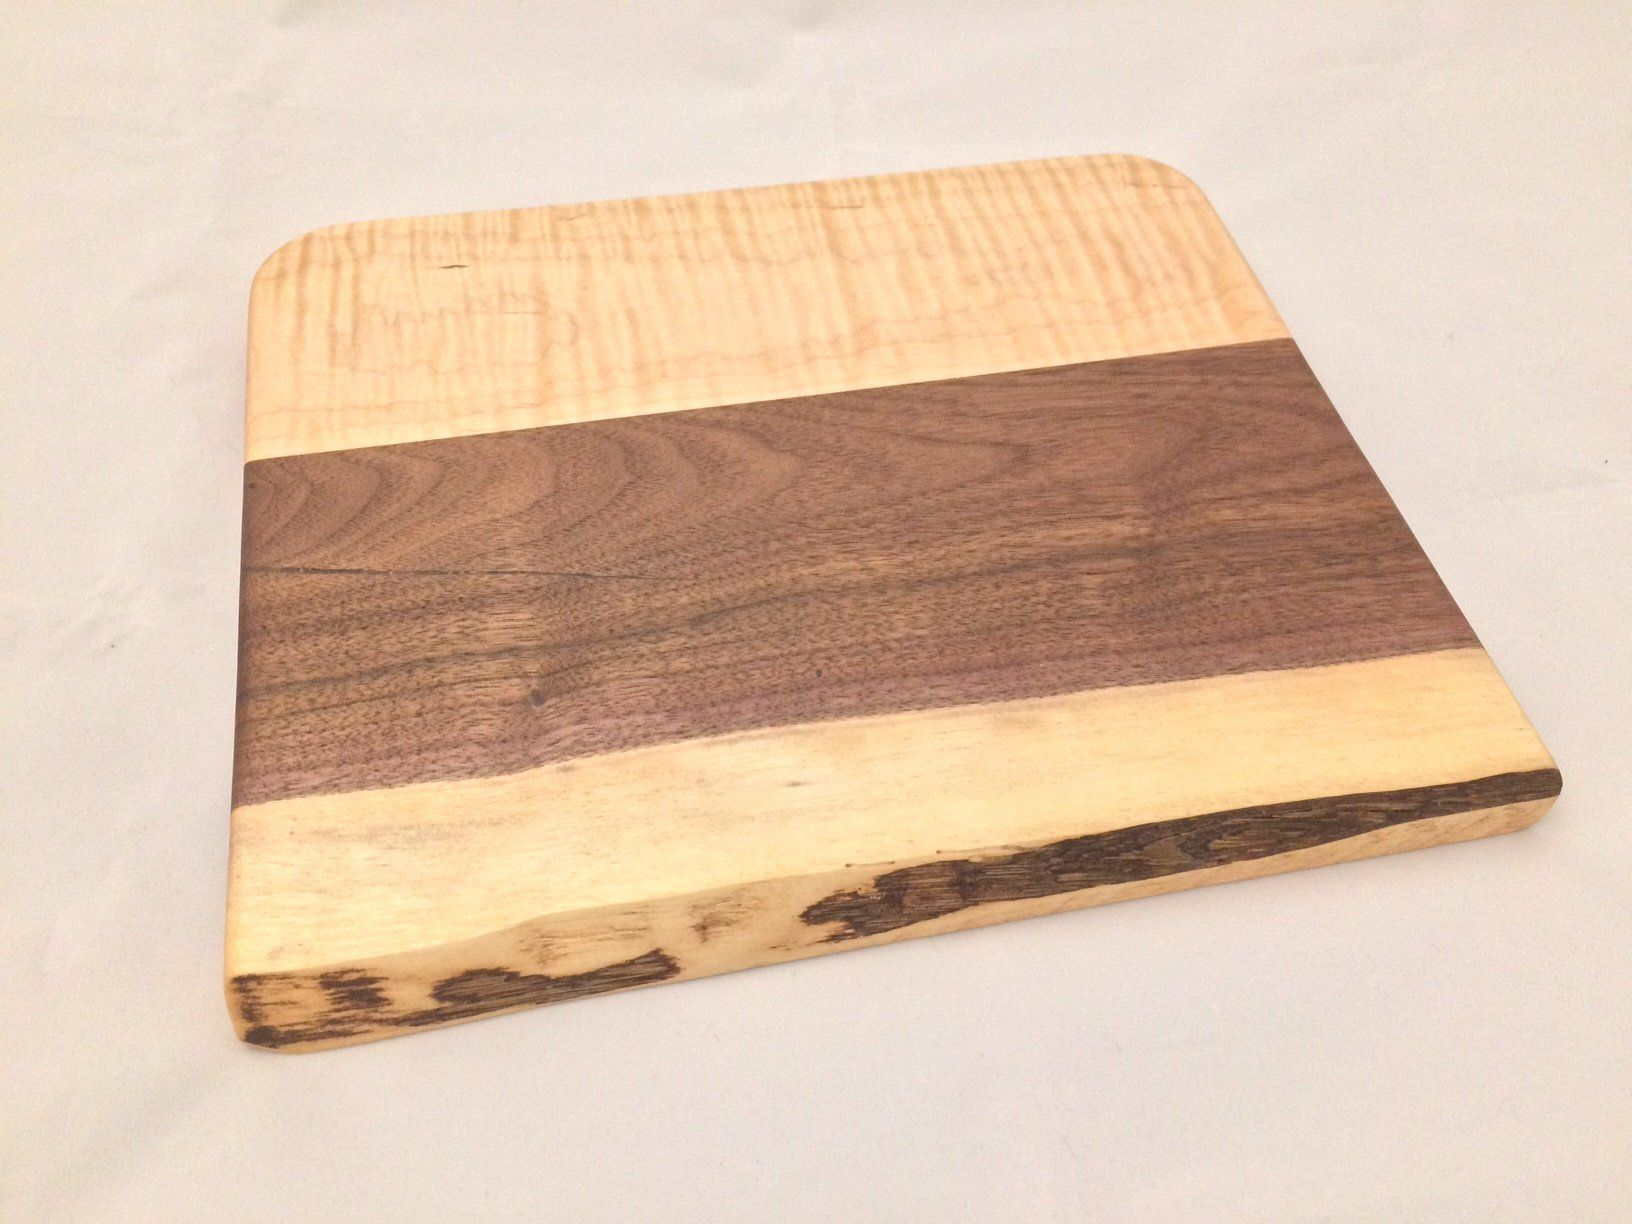 Curly Maple And Walnut Wooden Carving Board With Live Edge Handmade Wood Crafts Carving Board Walnut Wood